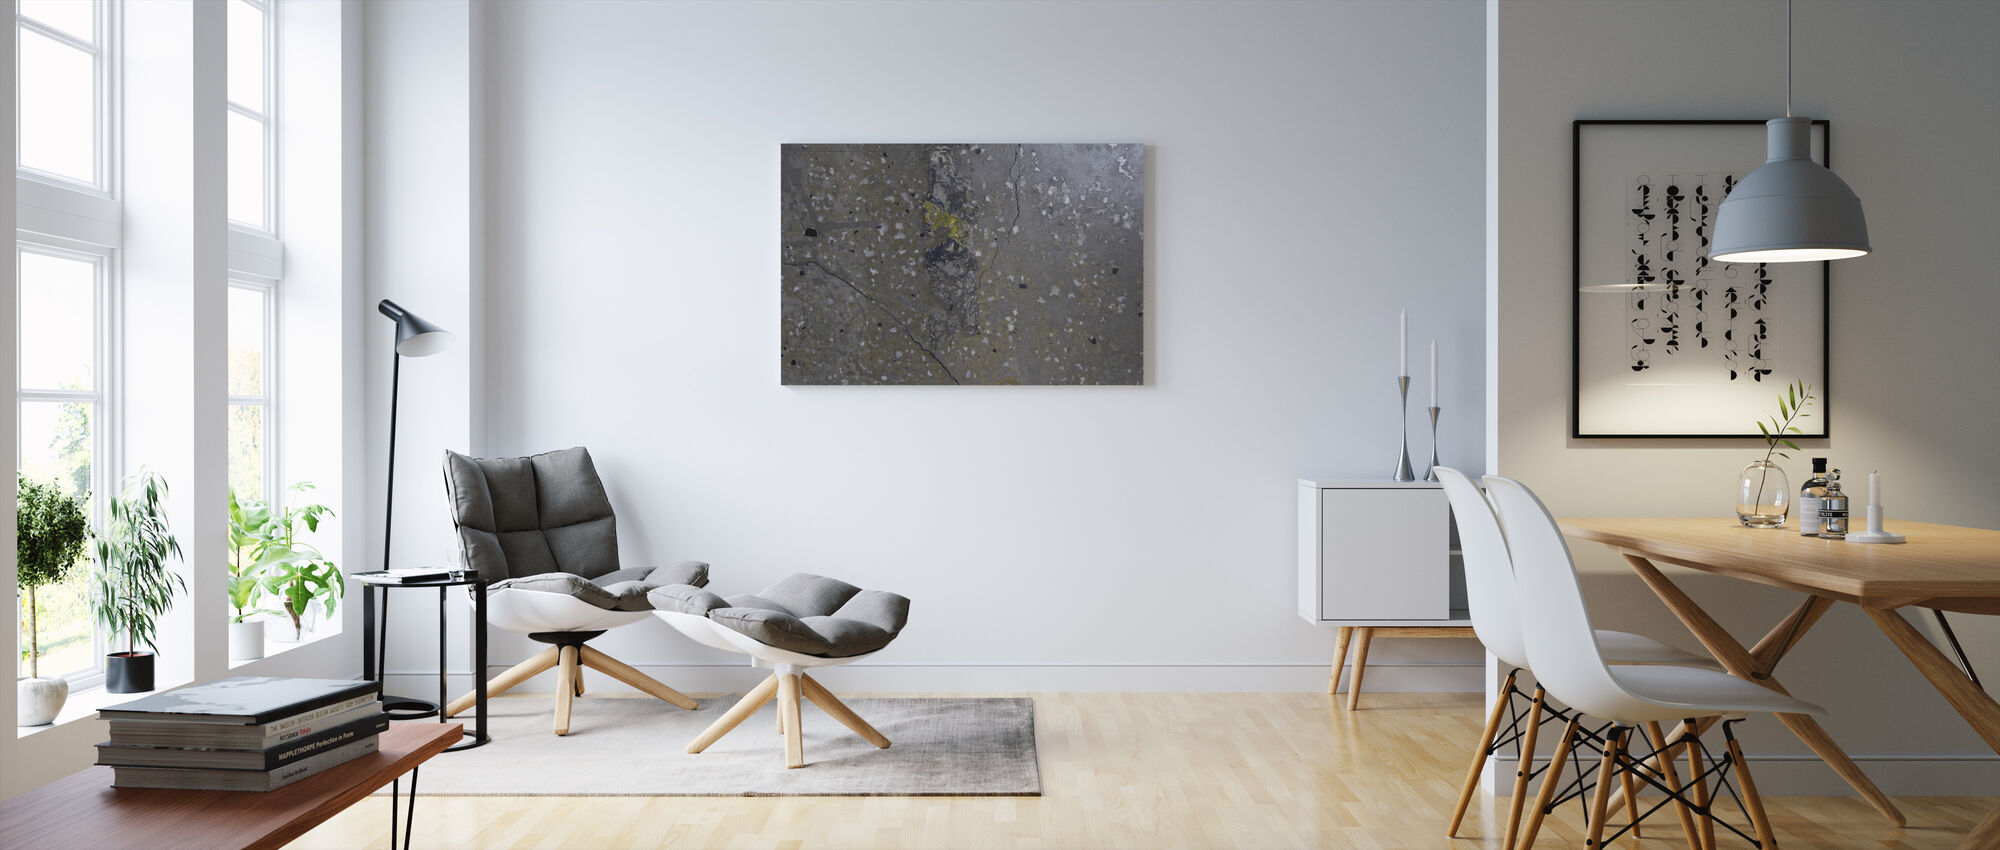 Concrete Floor on Wall 3 - Canvas print - Living Room